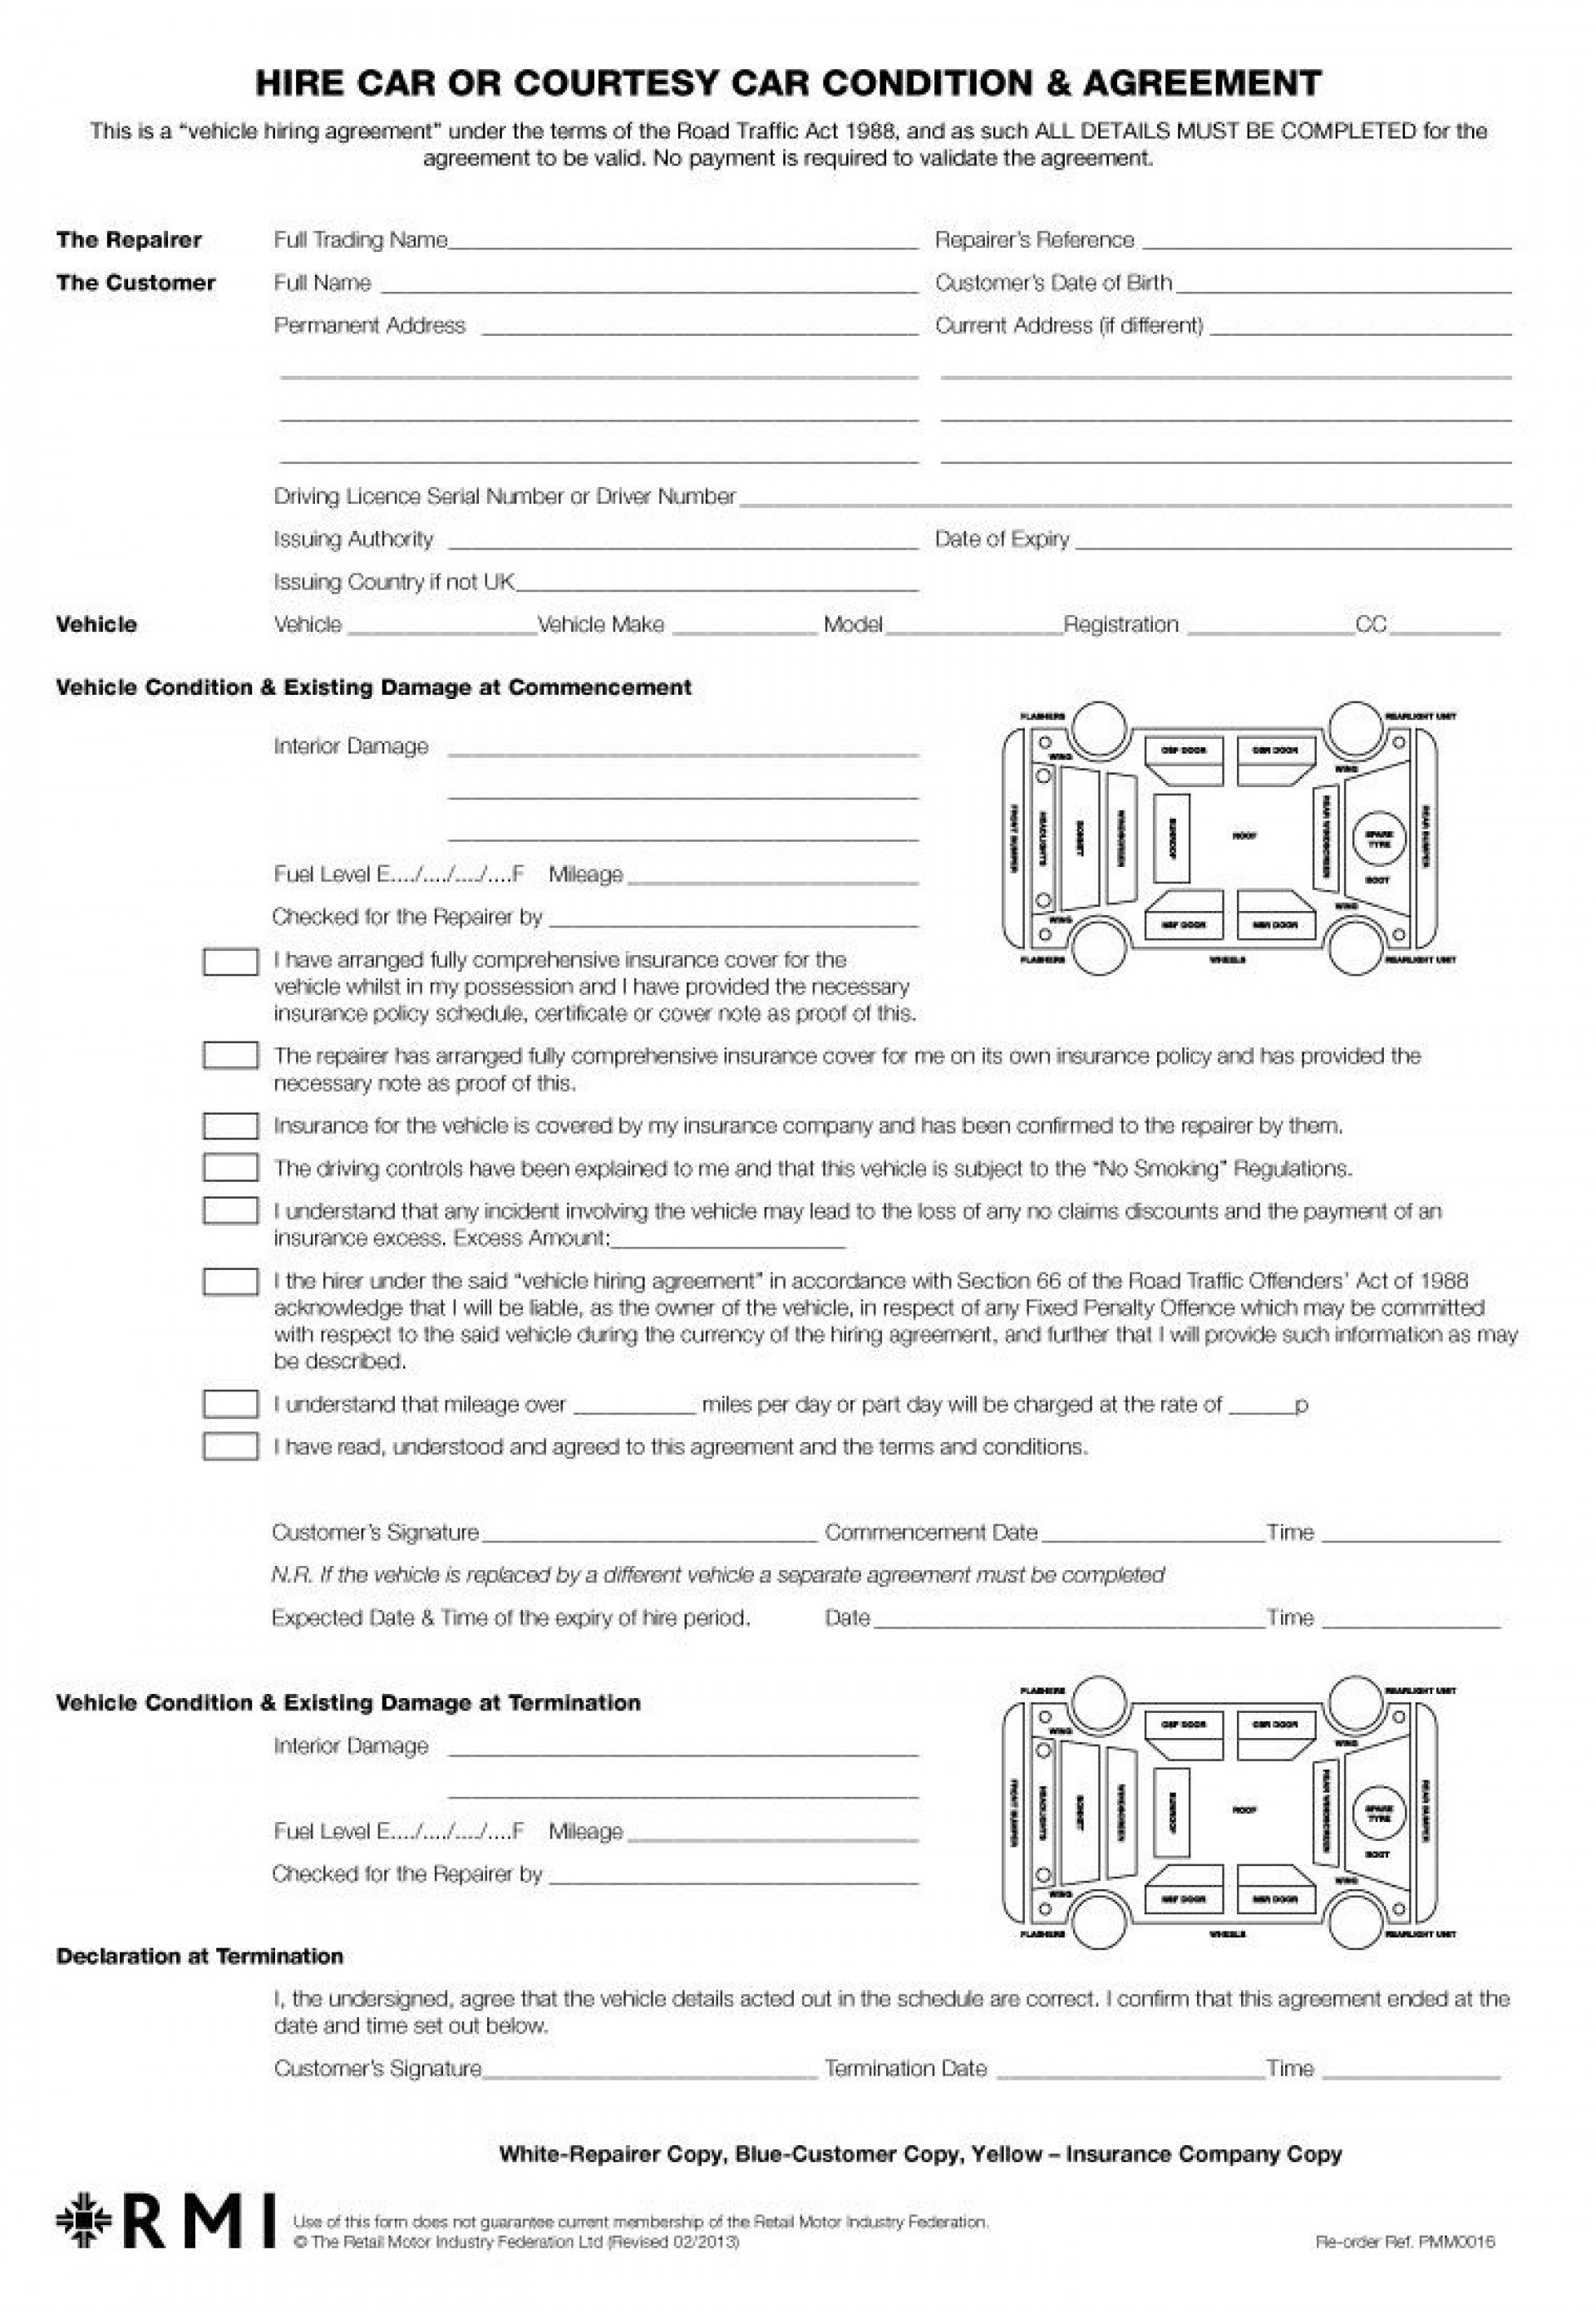 005 Sensational Template Car Rental Form Example  Checklist Free Printable1920